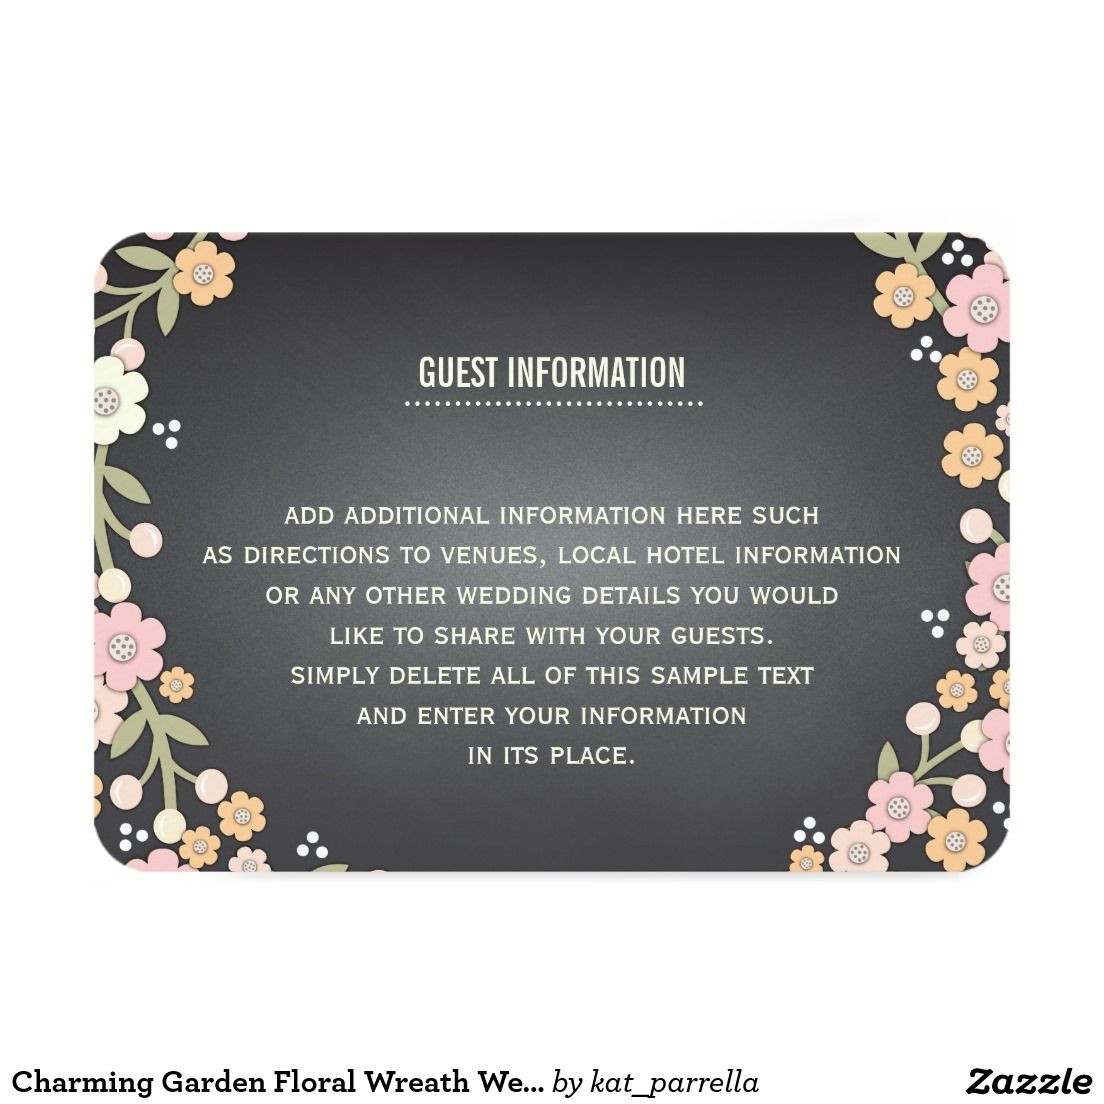 Charming Garden Floral Wreath Wedding Info Card Floral Wreath And